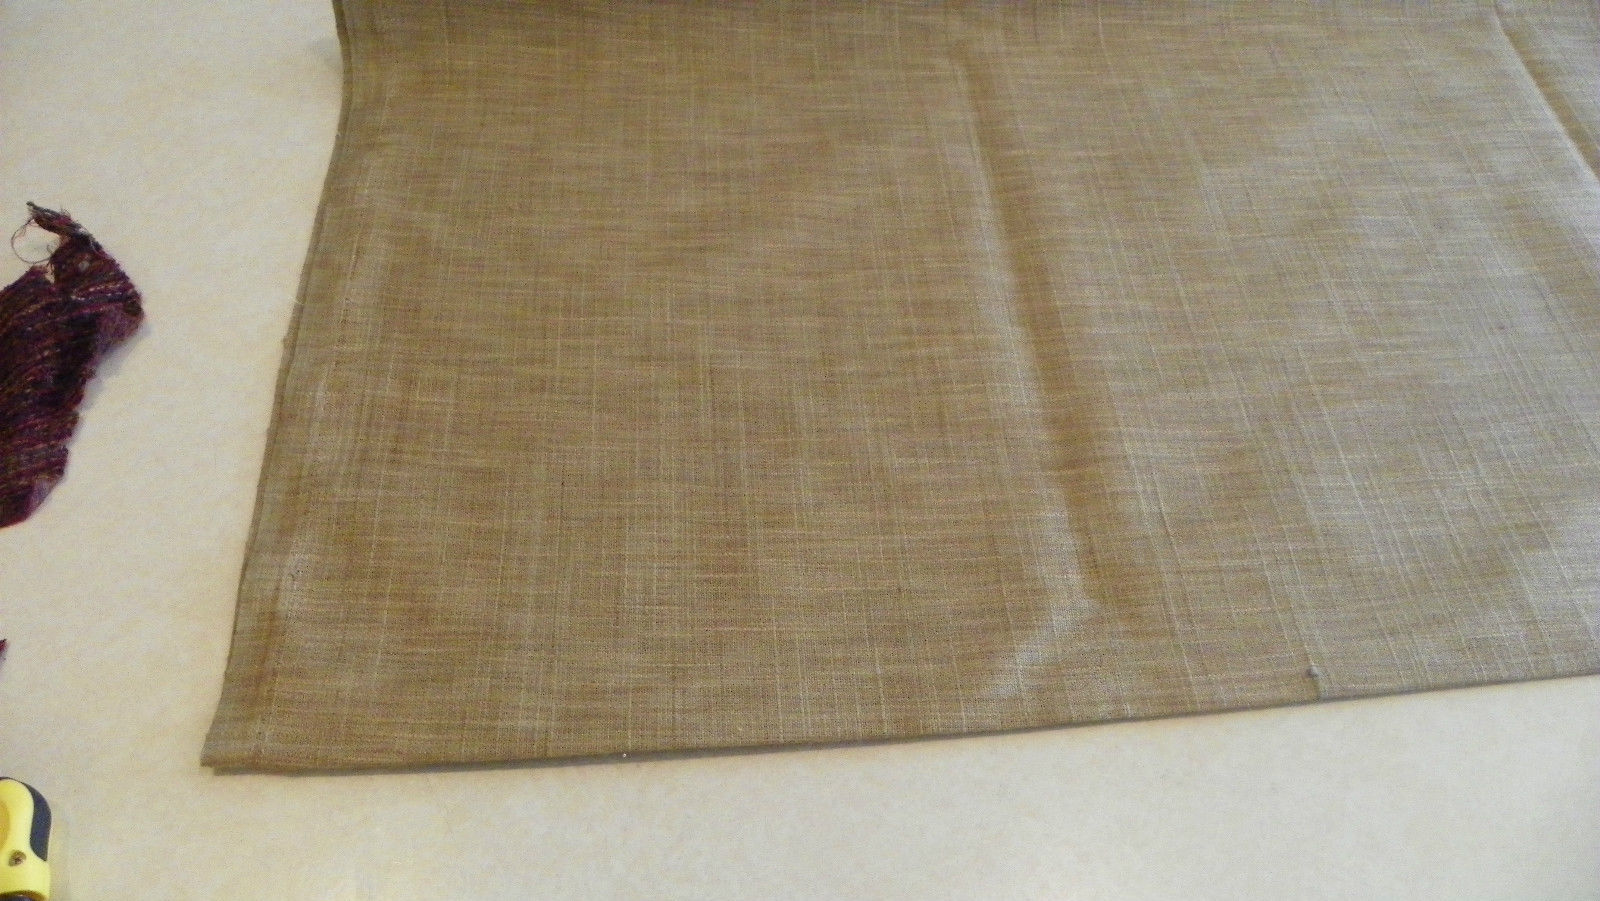 Tan or Beige Canvas Upholstery Fabric  1 Yard  F1129